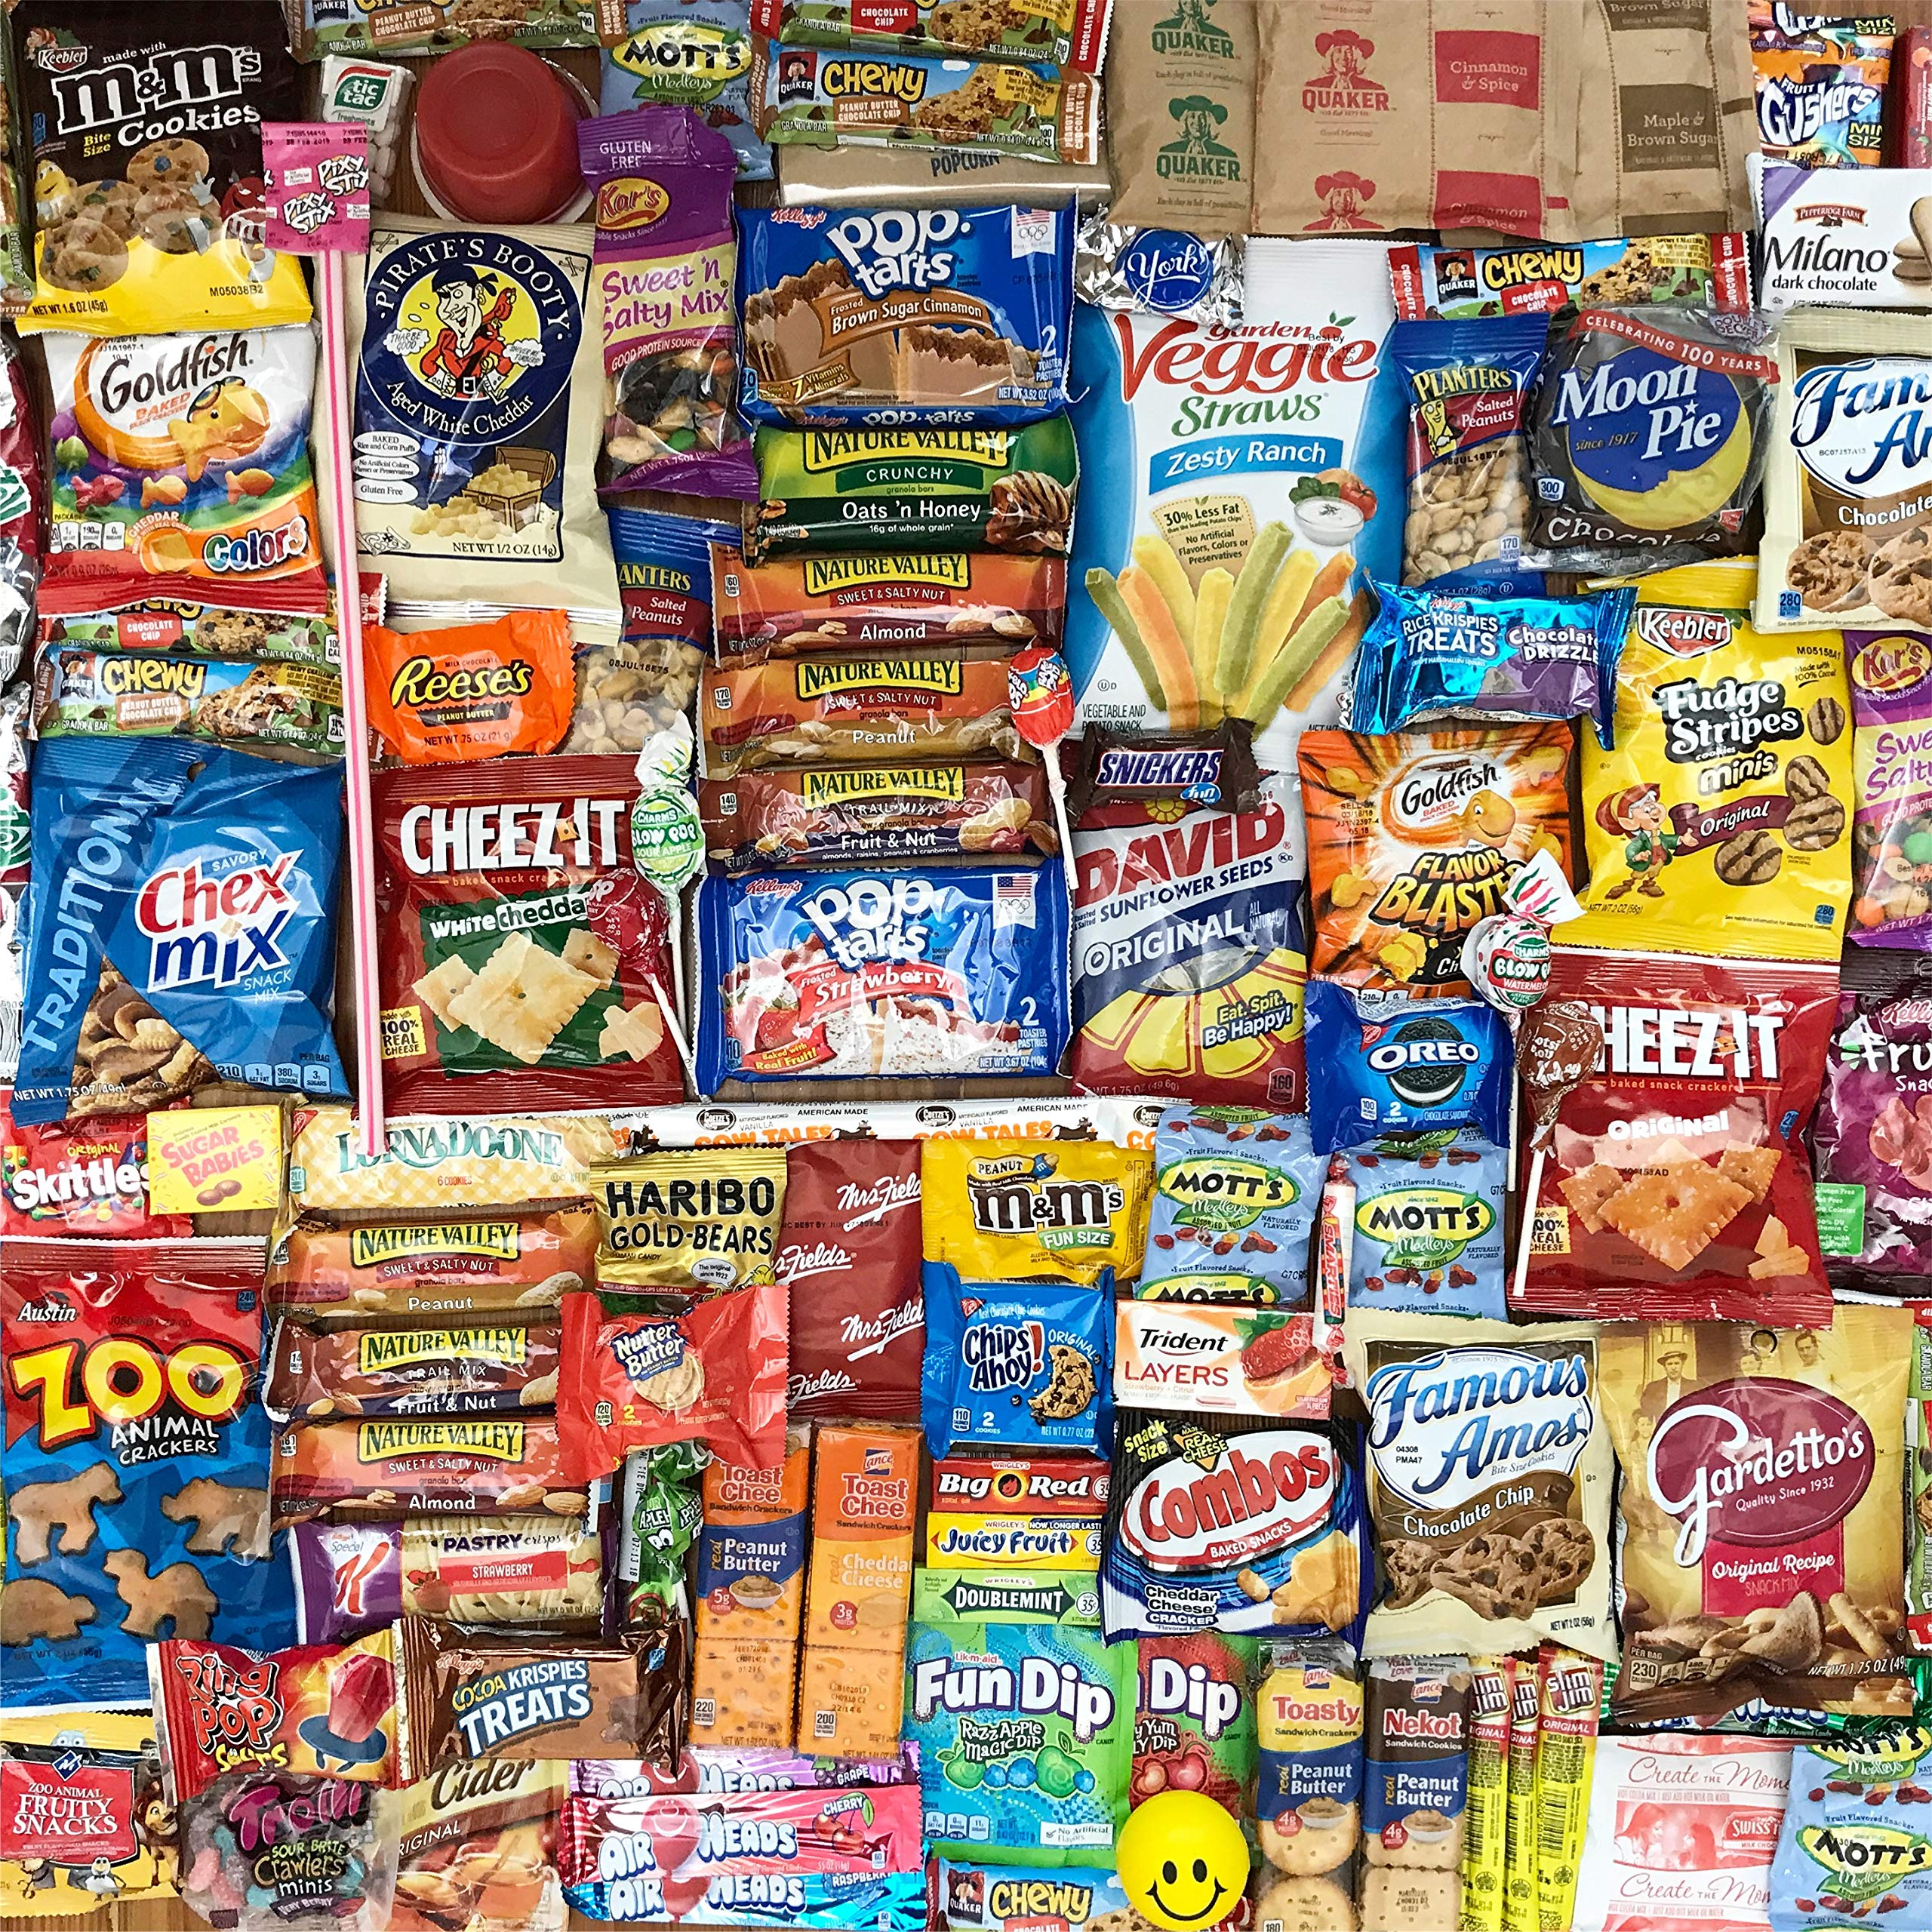 100 Office Snacks Care Package - Snack Pack Boxed Variety of Assorted Snacks 100 Count by SmallTown Table (Image #1)